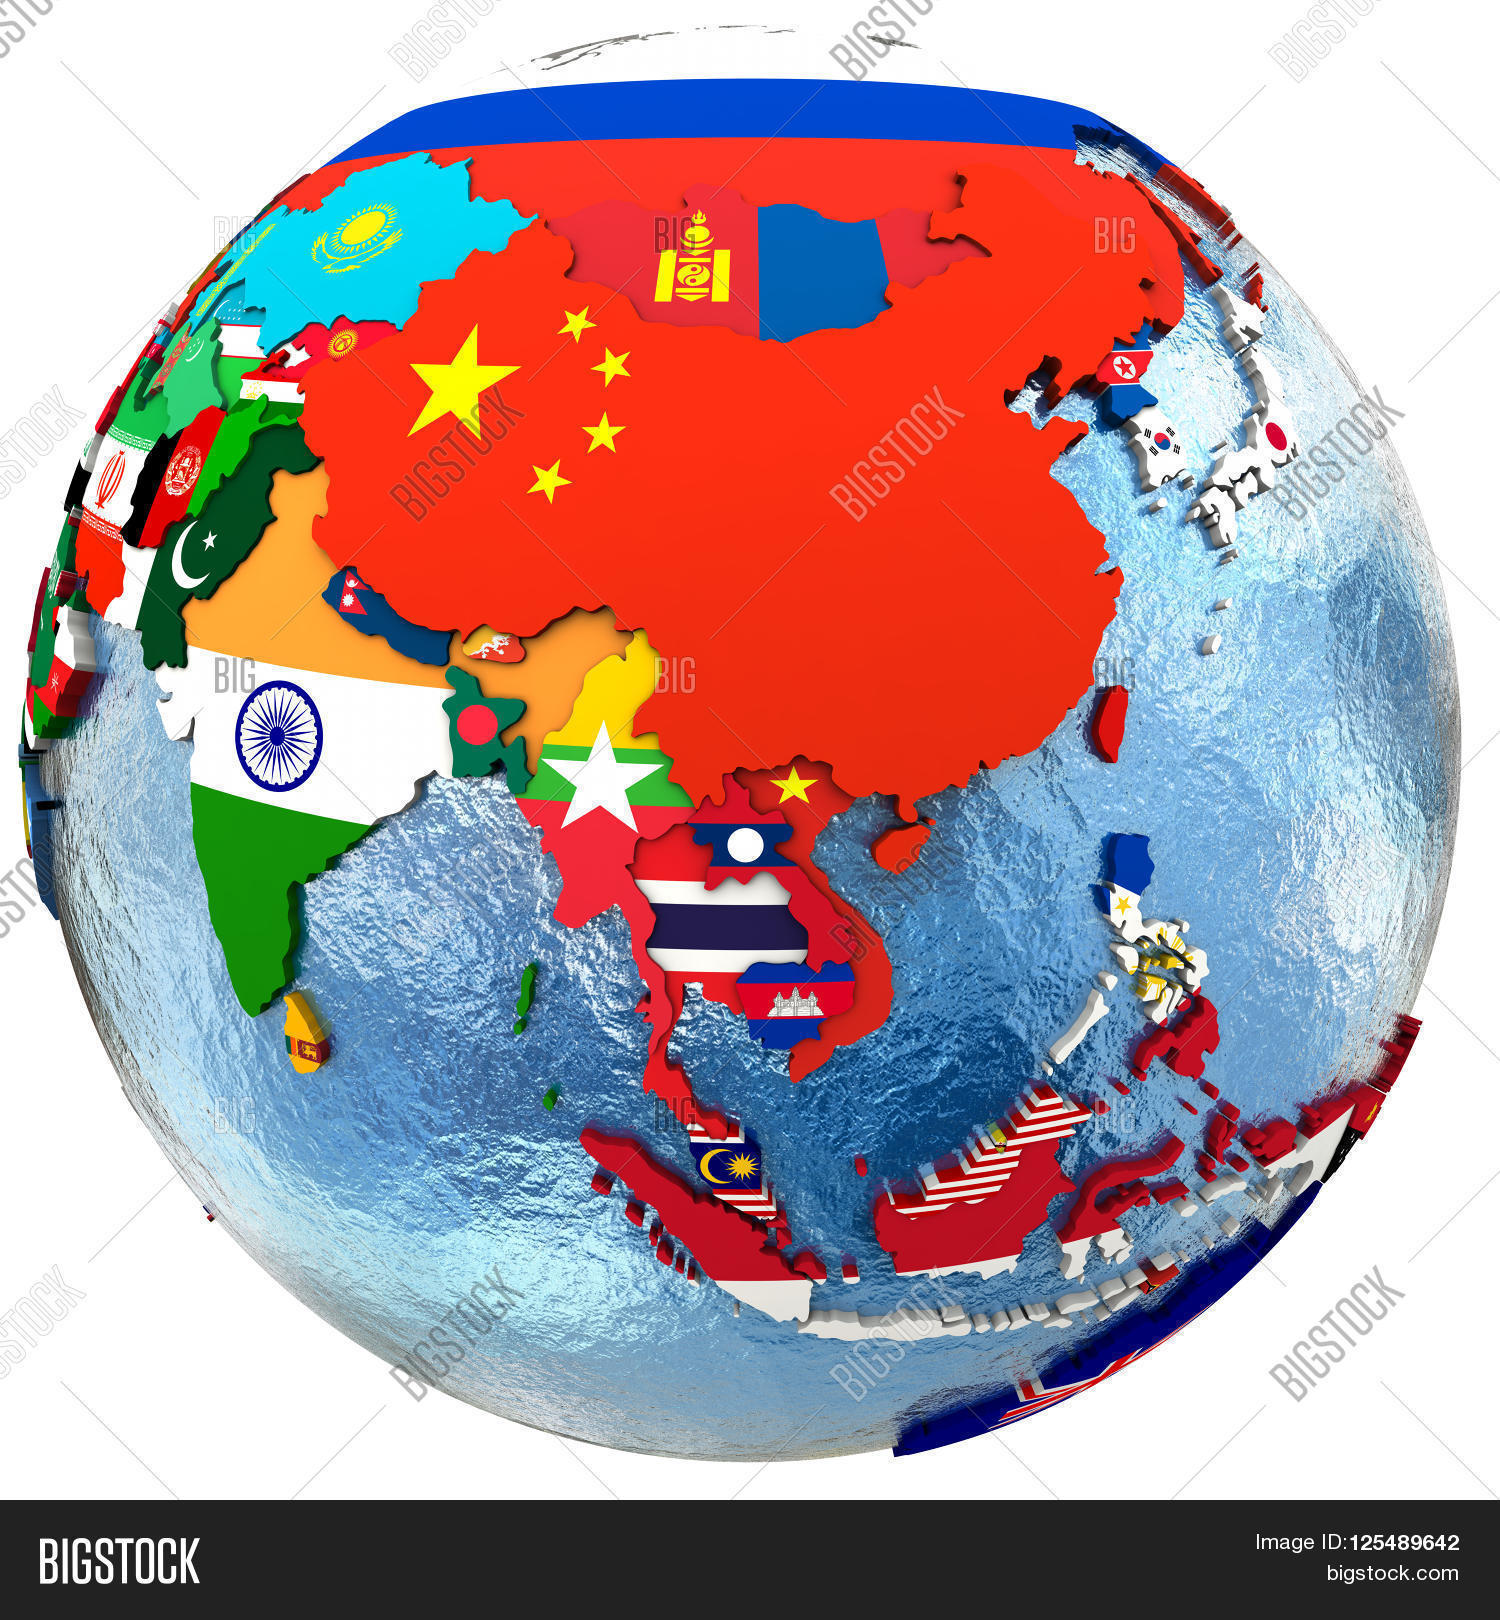 Political map image photo free trial bigstock political map of southeast asia with each country represented by its national flag isolated on gumiabroncs Choice Image